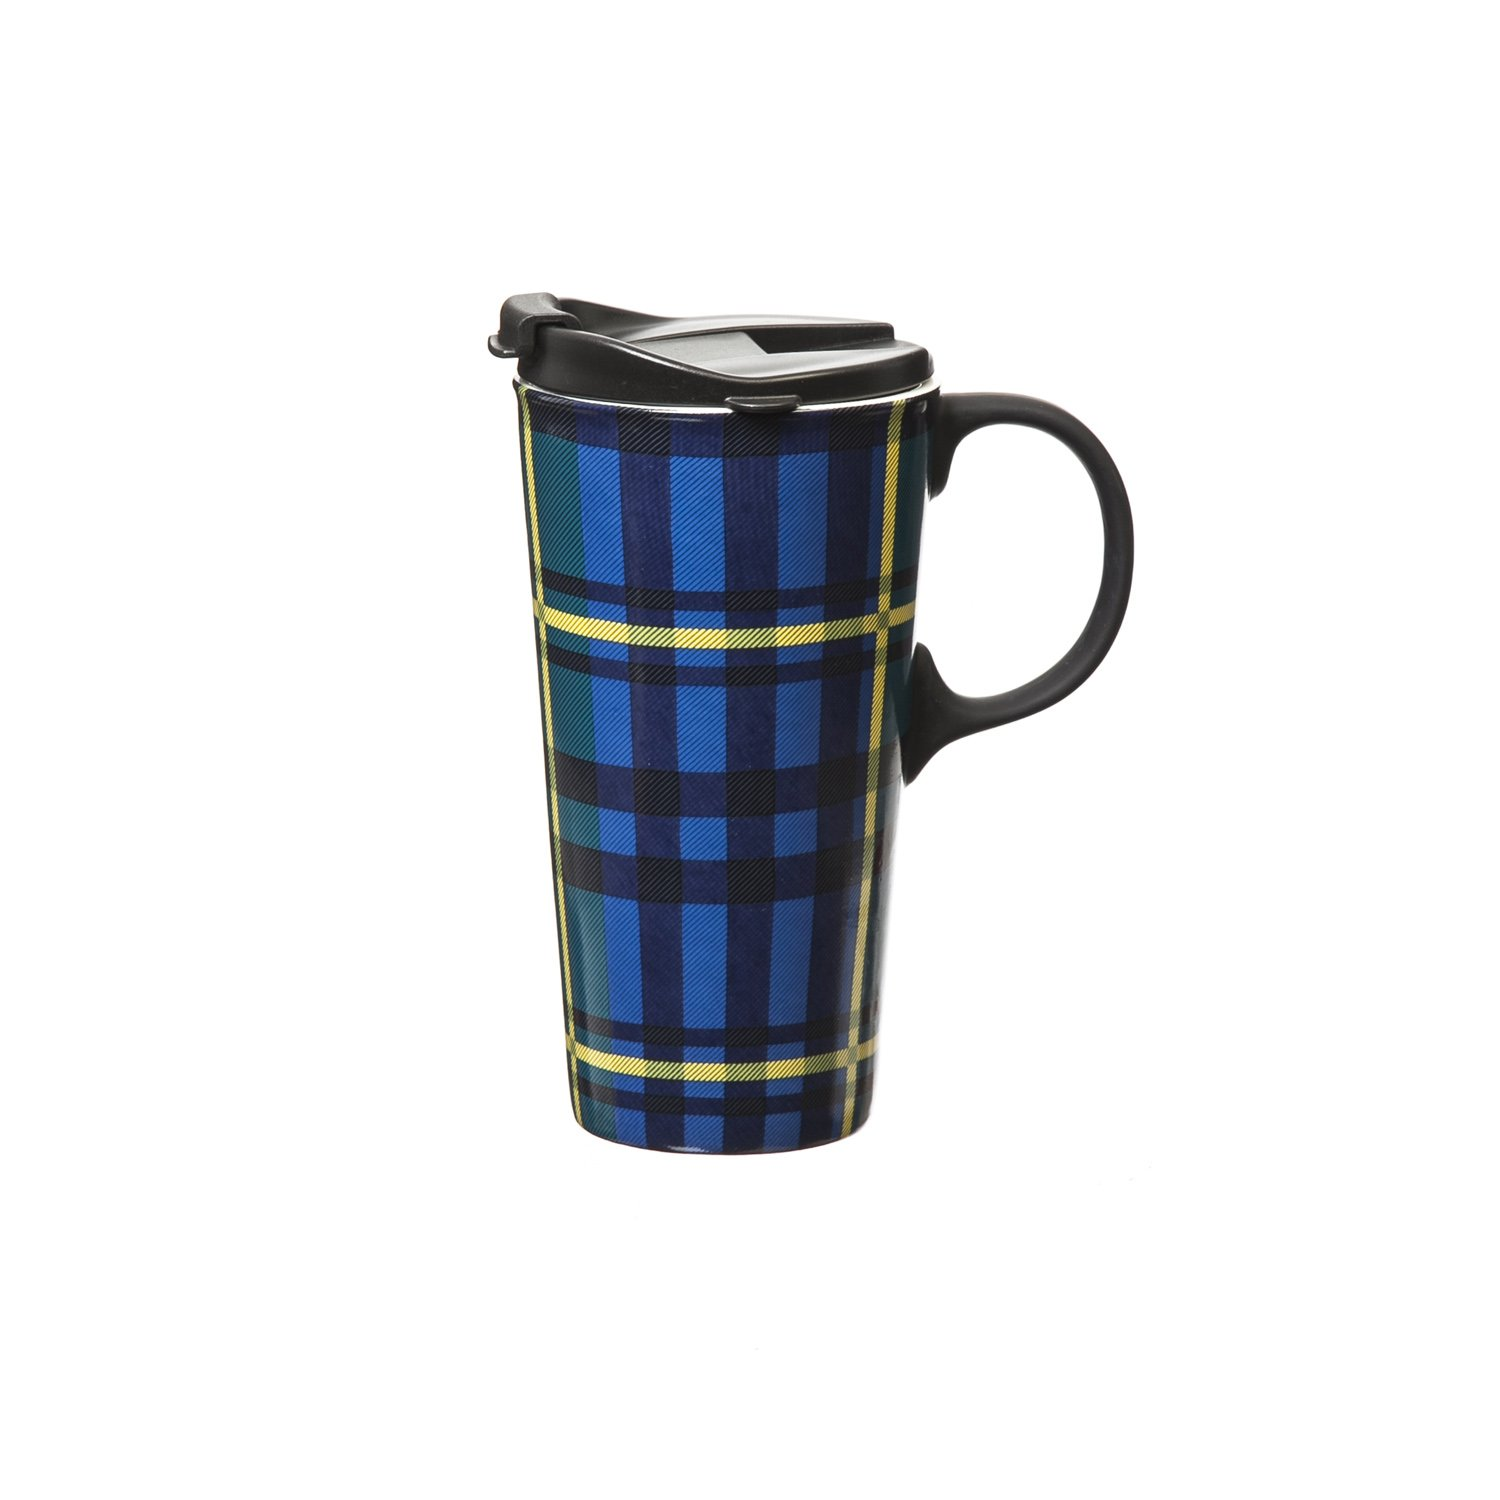 Cypress Home Green and Blue Plaid Ceramic Travel Coffee Mug with Gift Box, 17 ounces